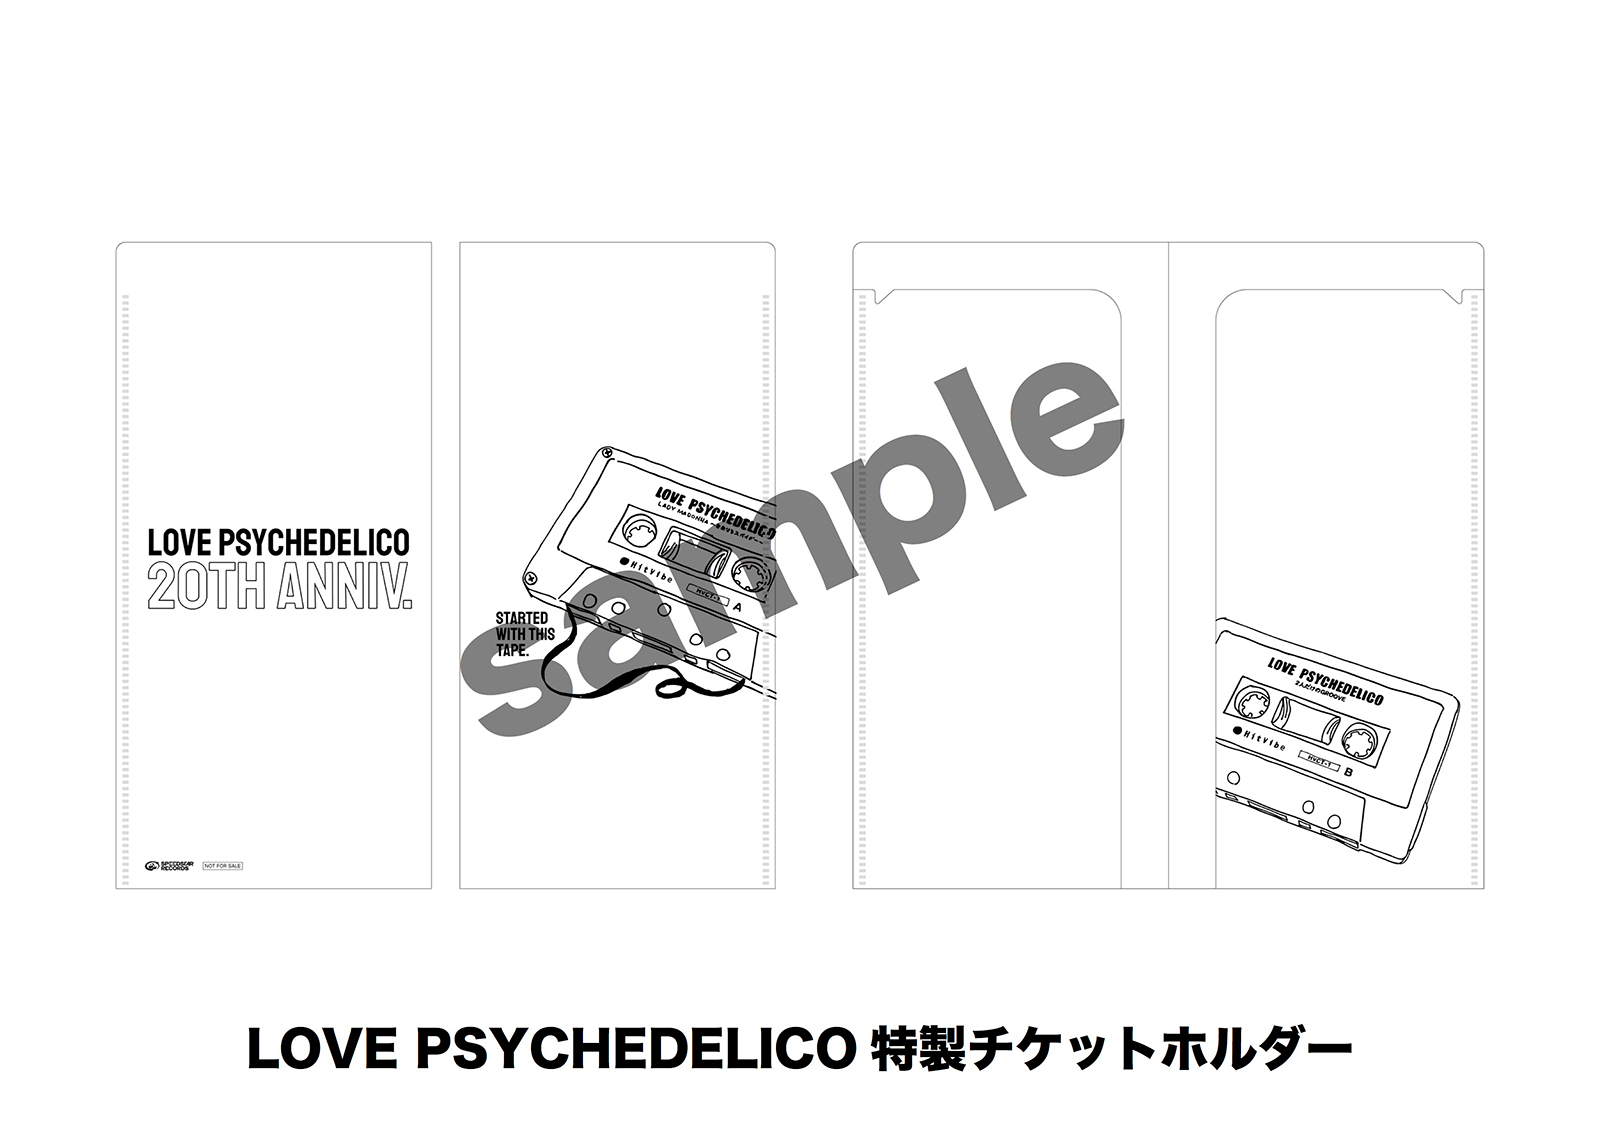 「LOVE PSYCHEDELICO特製チケットホルダー」